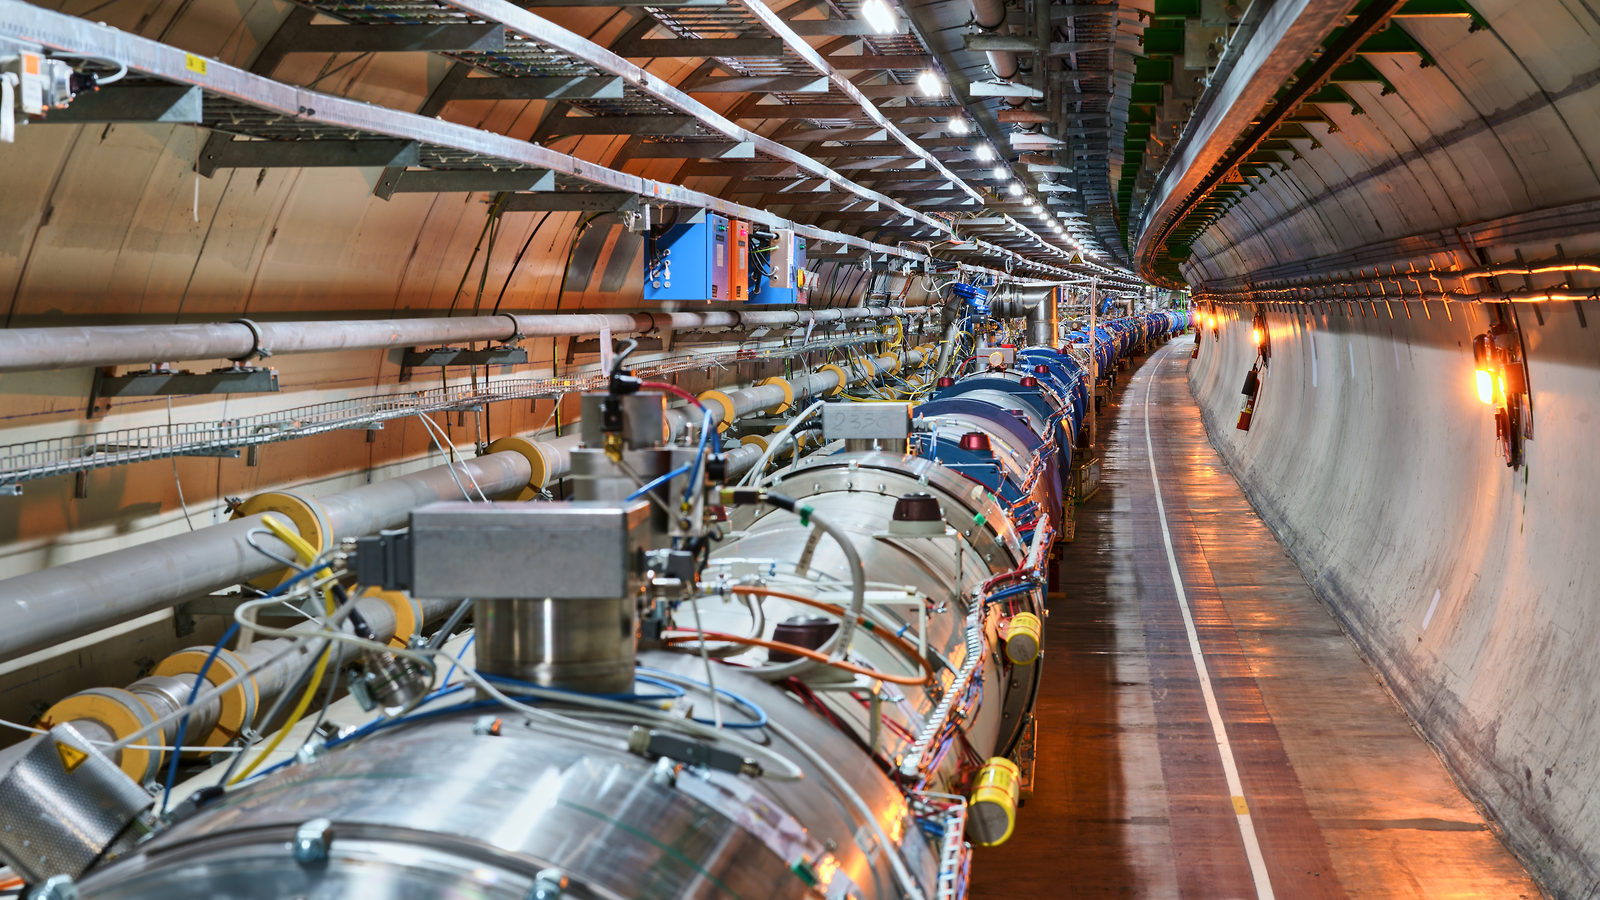 Photograph of the LHC tunnel